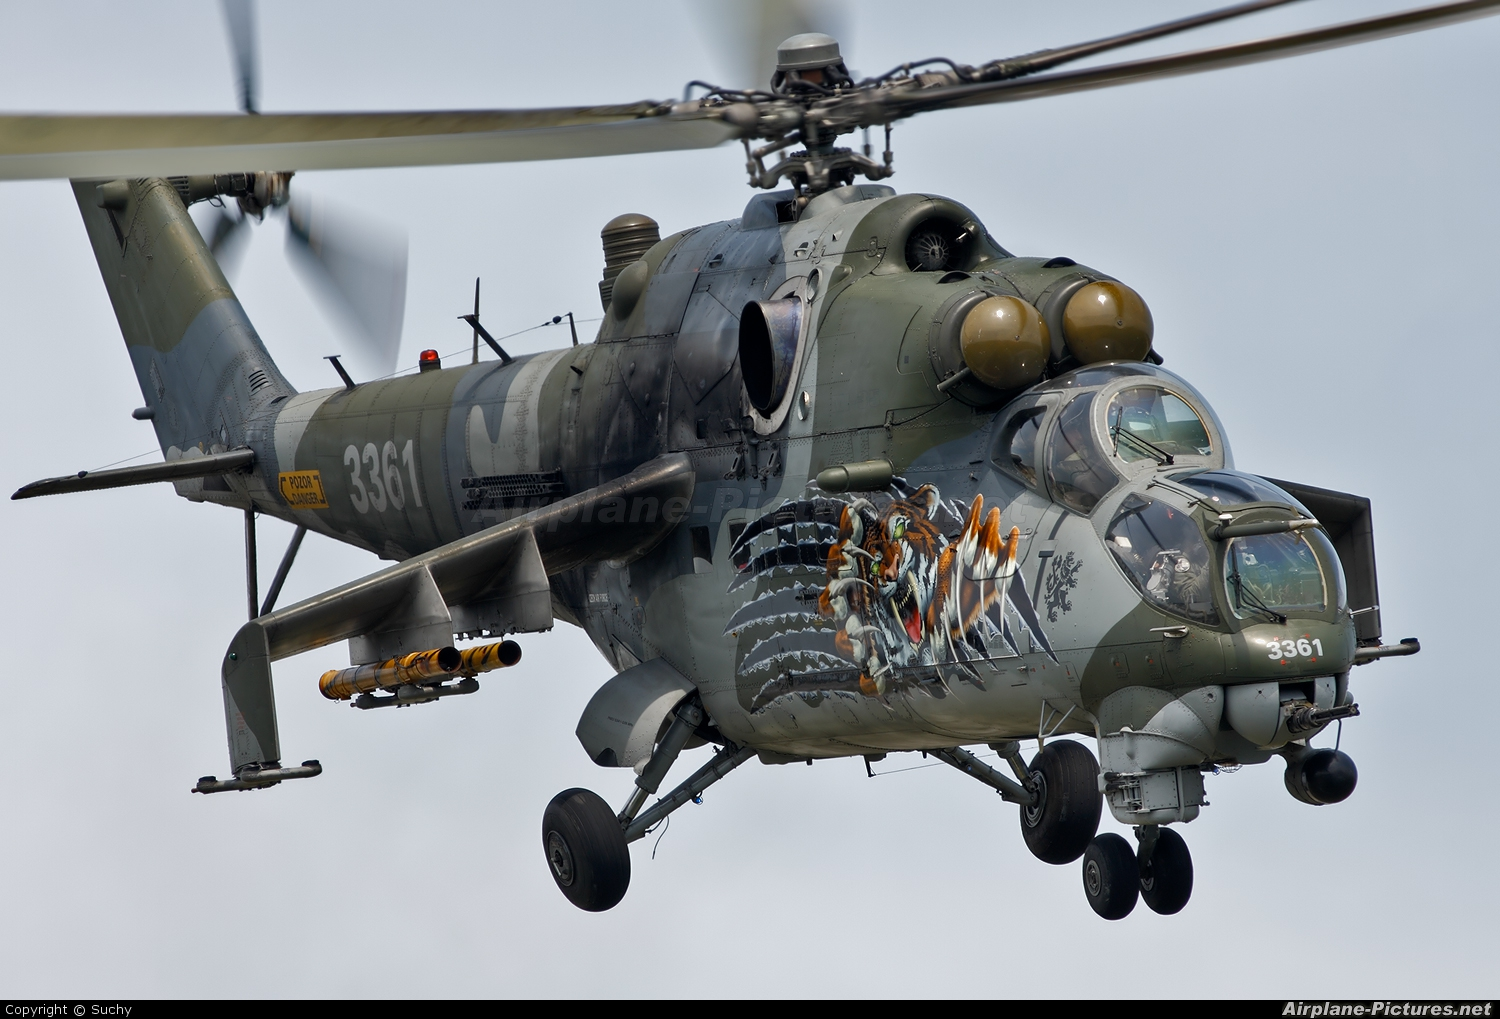 mil 35 helicopter with 3361 Czech Air Force Mil Mi 35 on Mi 24 Mil Hind Attack Helicopter Crocodile Flying Tank 1503 in addition  also 2015 Delivery Forecasts together with Fsx Royal Air Force Mh 47g Chinook as well 3361 Czech Air Force Mil Mi 35.